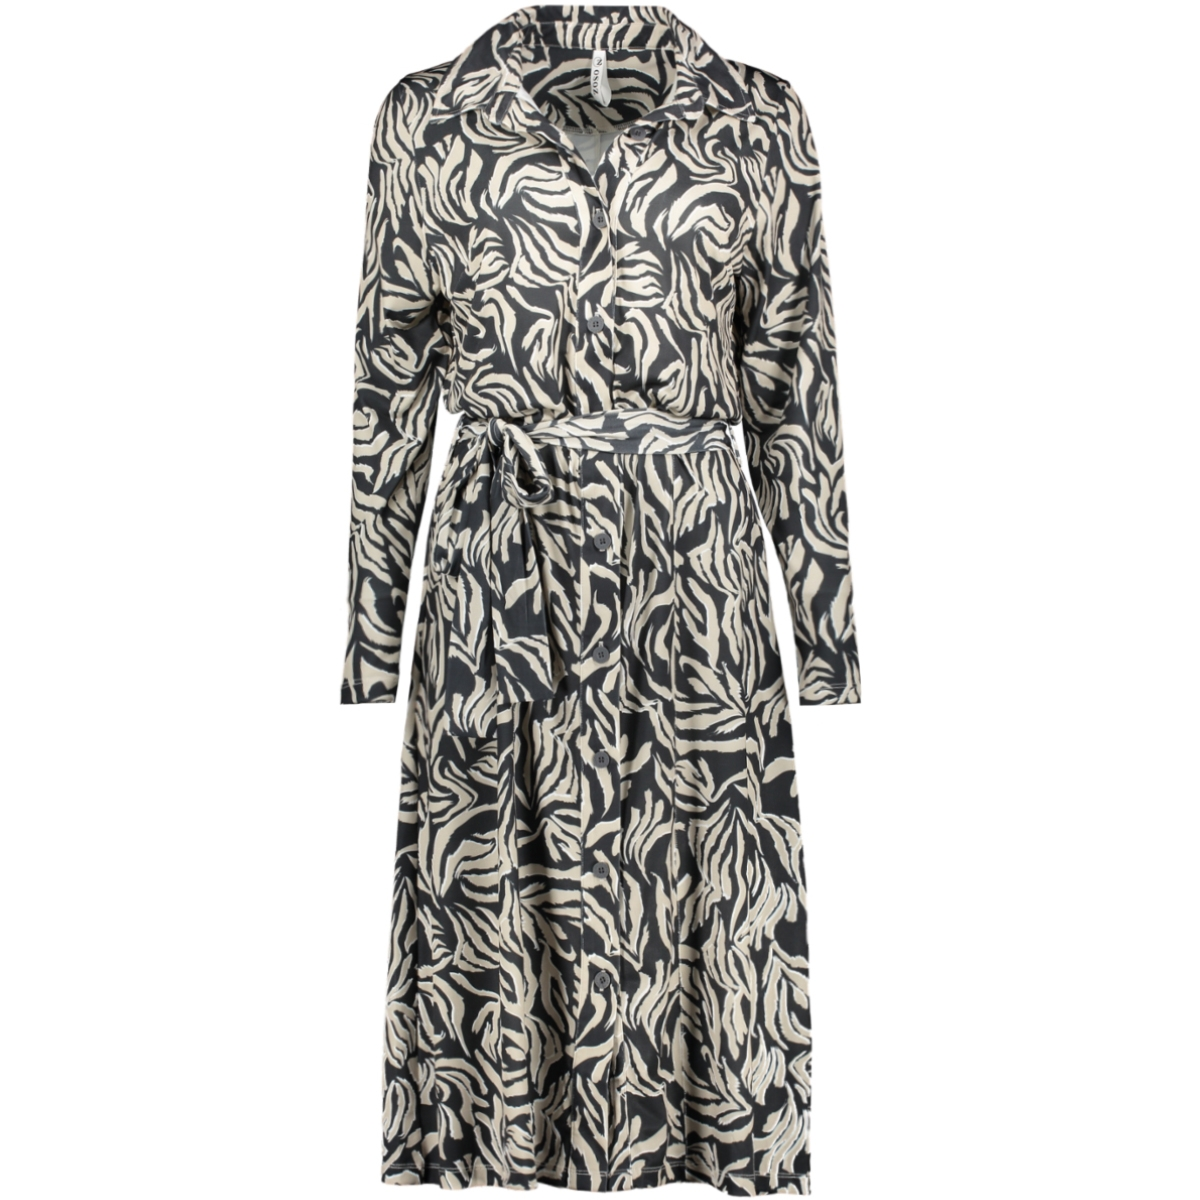 yvette animal print dress 201 zoso jurk 5000 as is